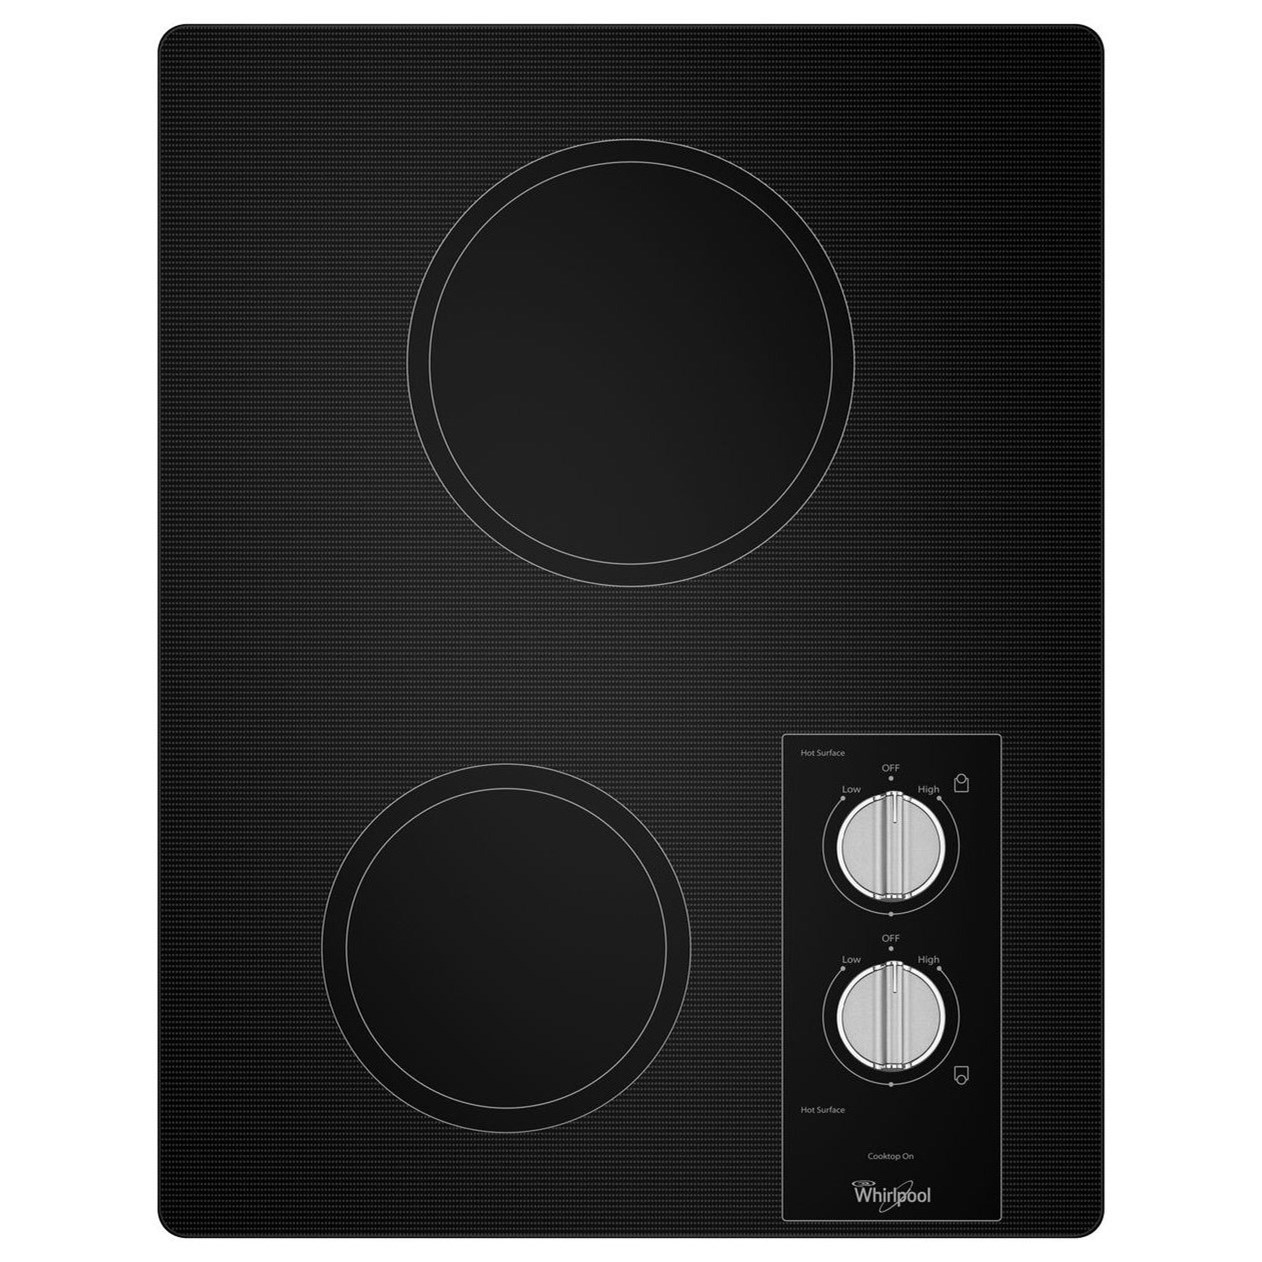 Whirlpool Electric Cooktops - Whirlpool Easy Wipe Ceramic Glass Cooktop - Item Number: W5CE1522FB